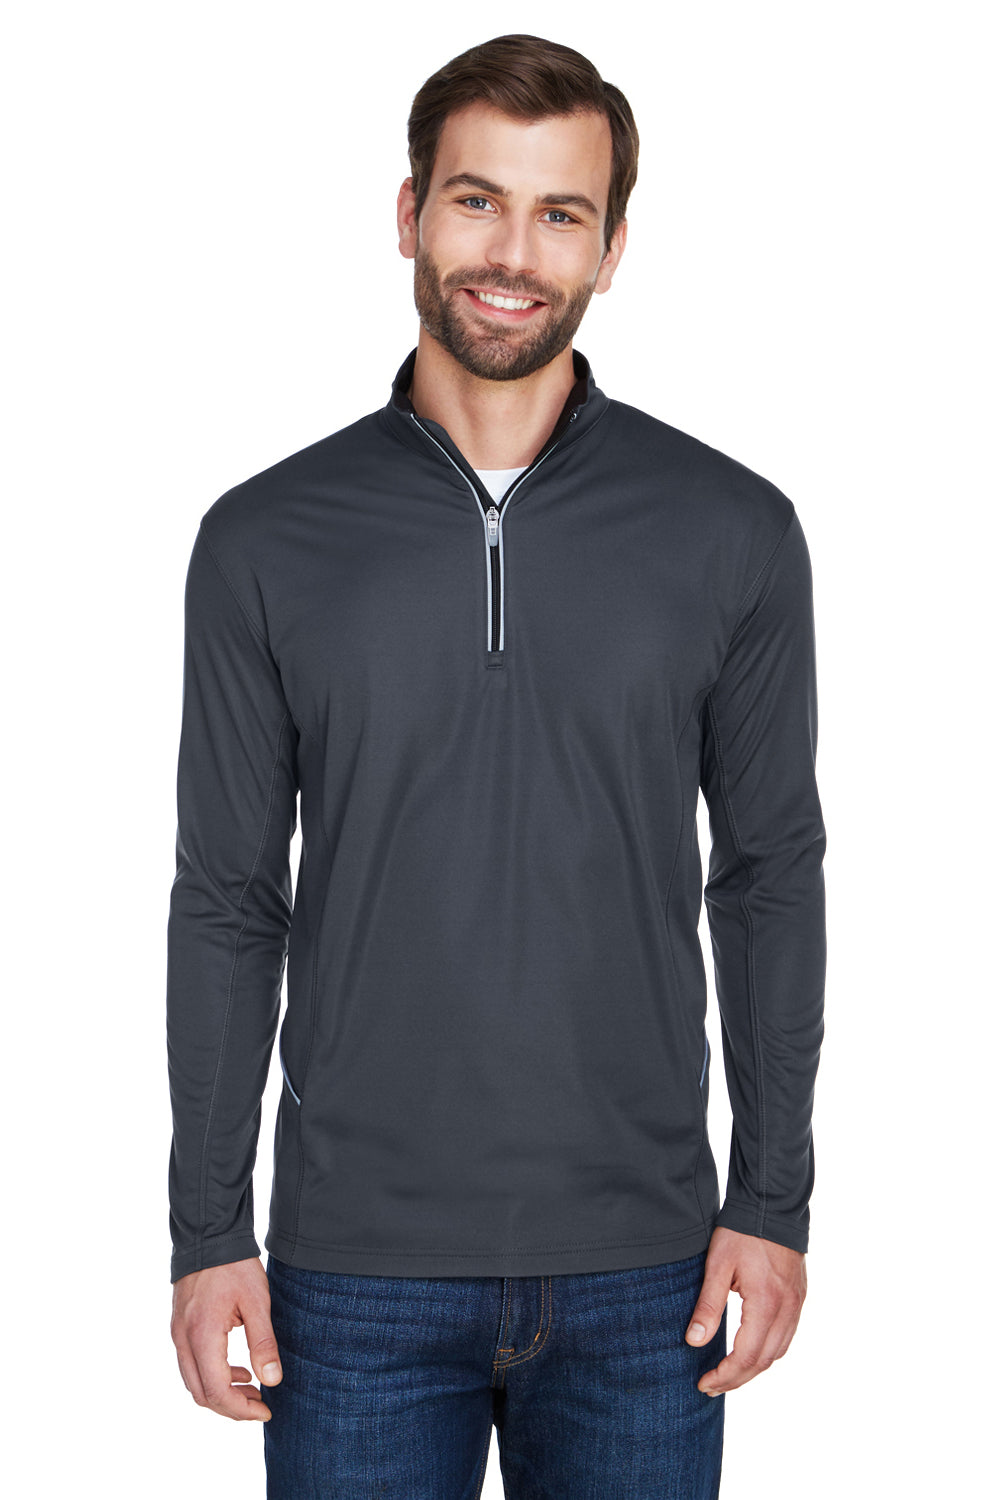 UltraClub 8230 Mens Cool & Dry Moisture Wicking 1/4 Zip Sweatshirt Black Front